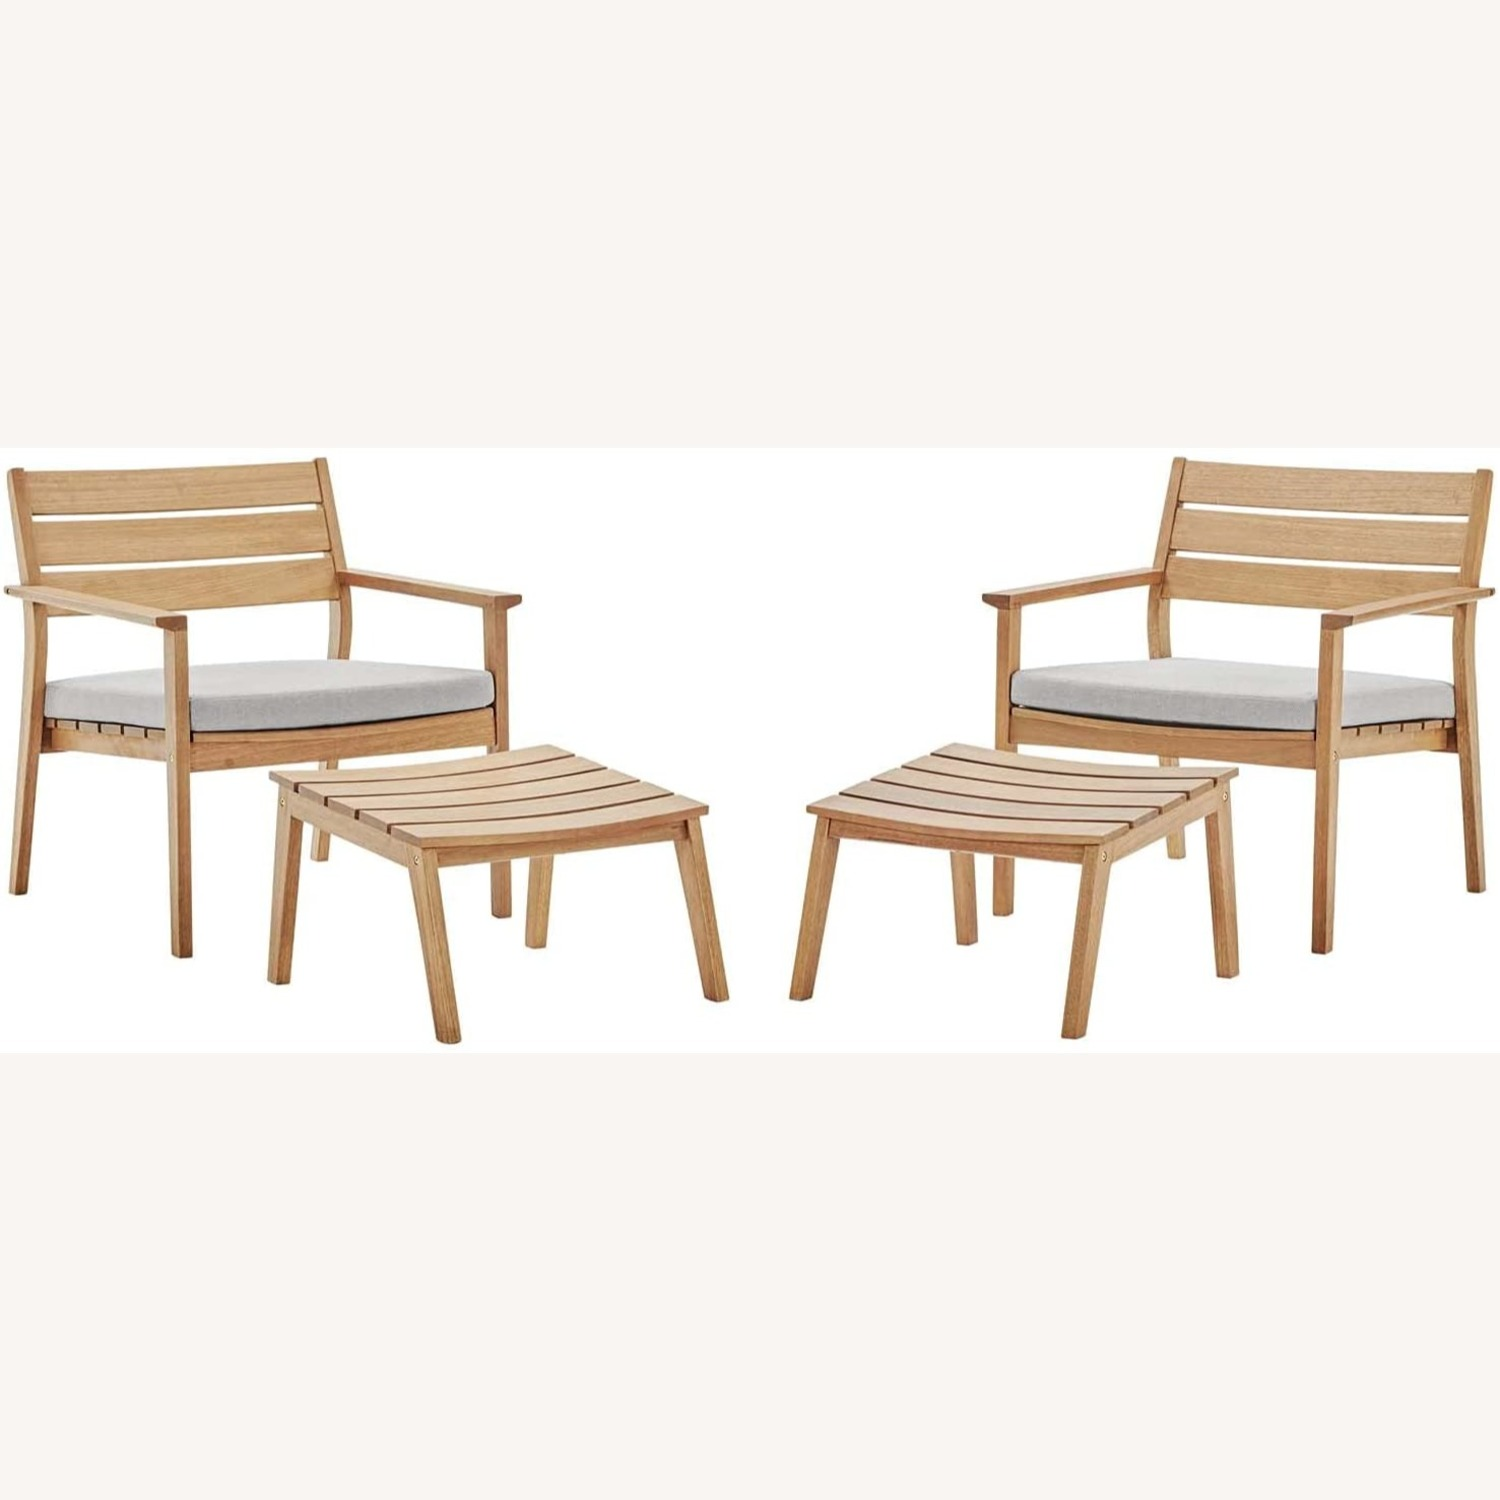 4-Piece Outdoor Patio Set In Natural Taupe Wood - image-0